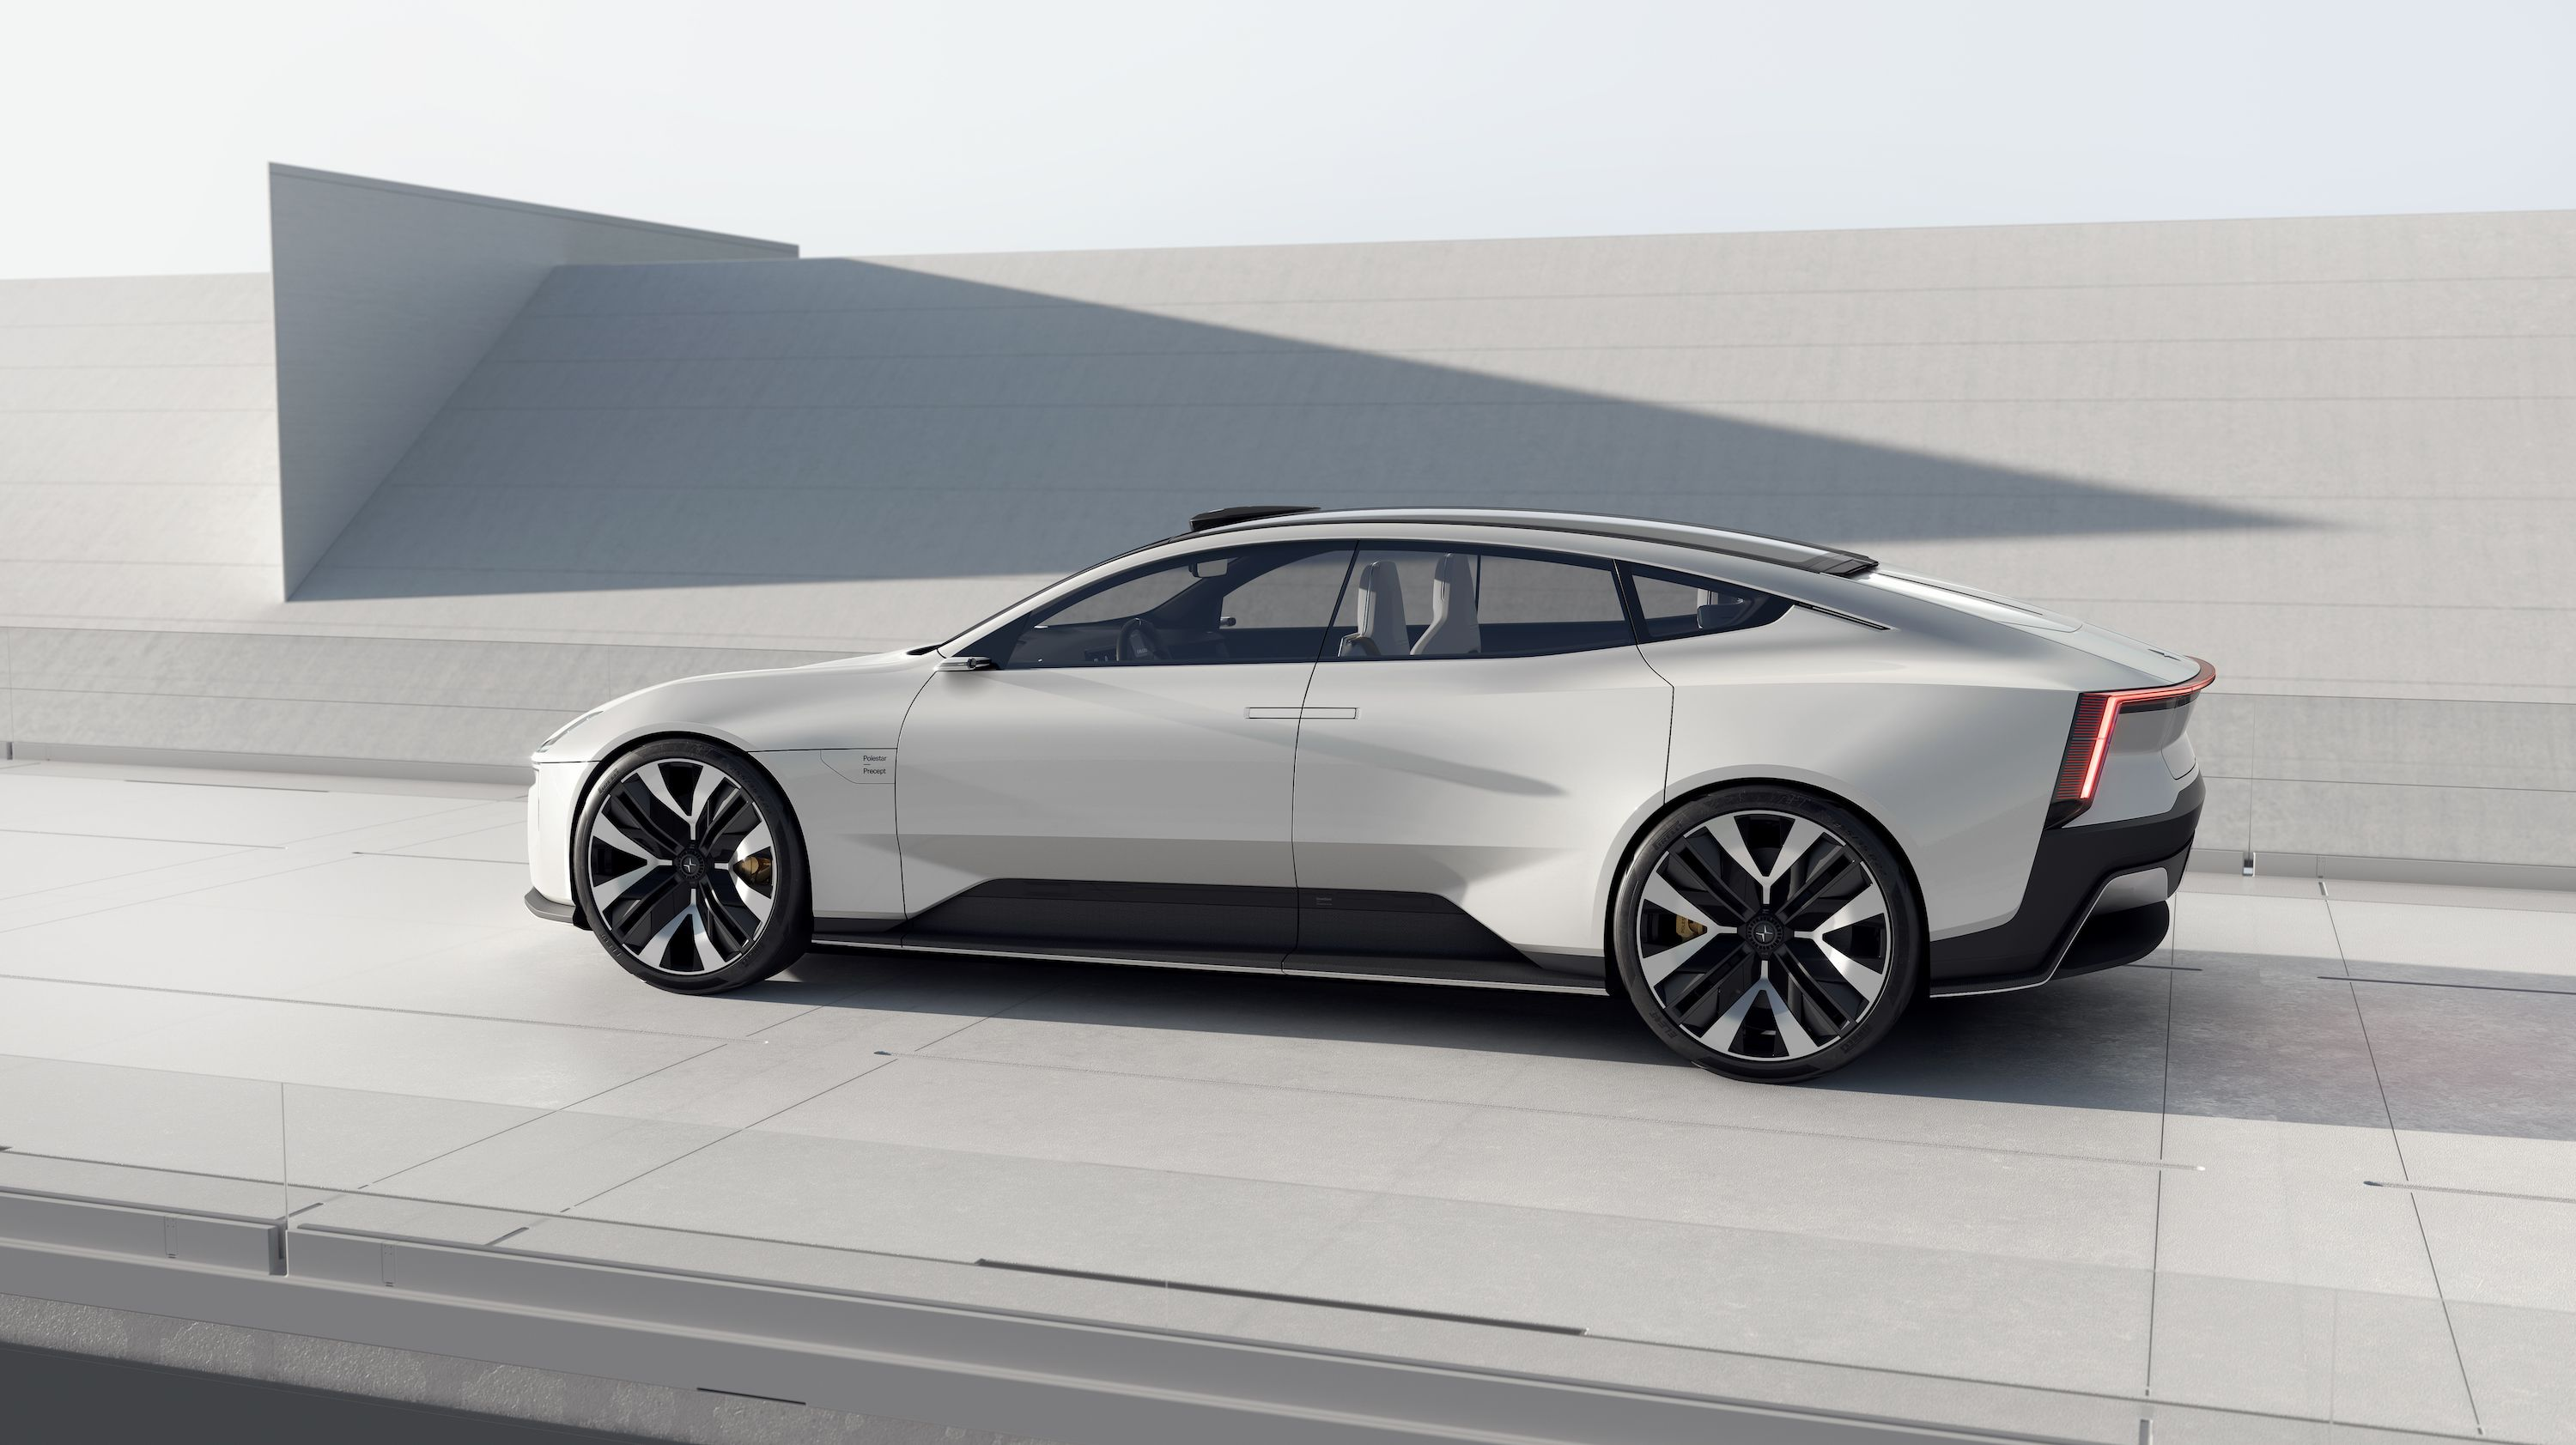 The Polestar Precept Doesn't Look Like a Volvo